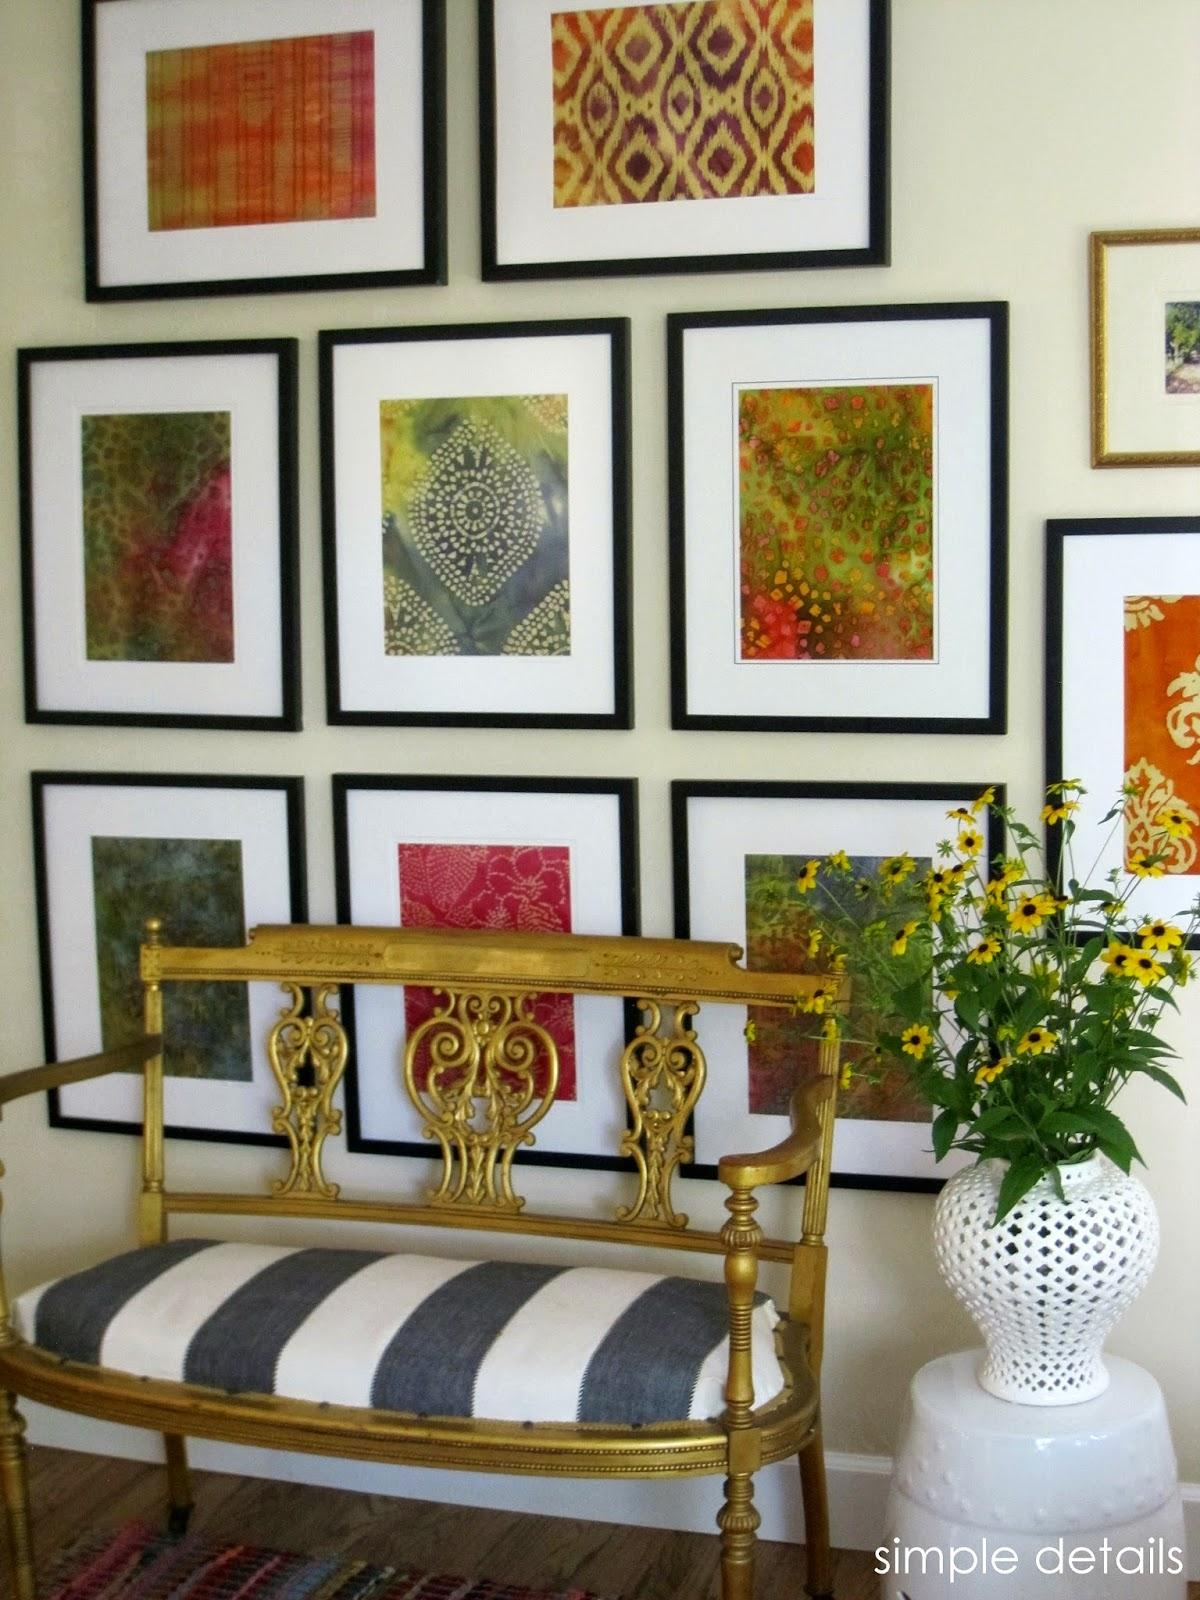 Simple Details: Diy Framed Batik Fabric Within Framed Fabric Wall Art (Image 19 of 20)